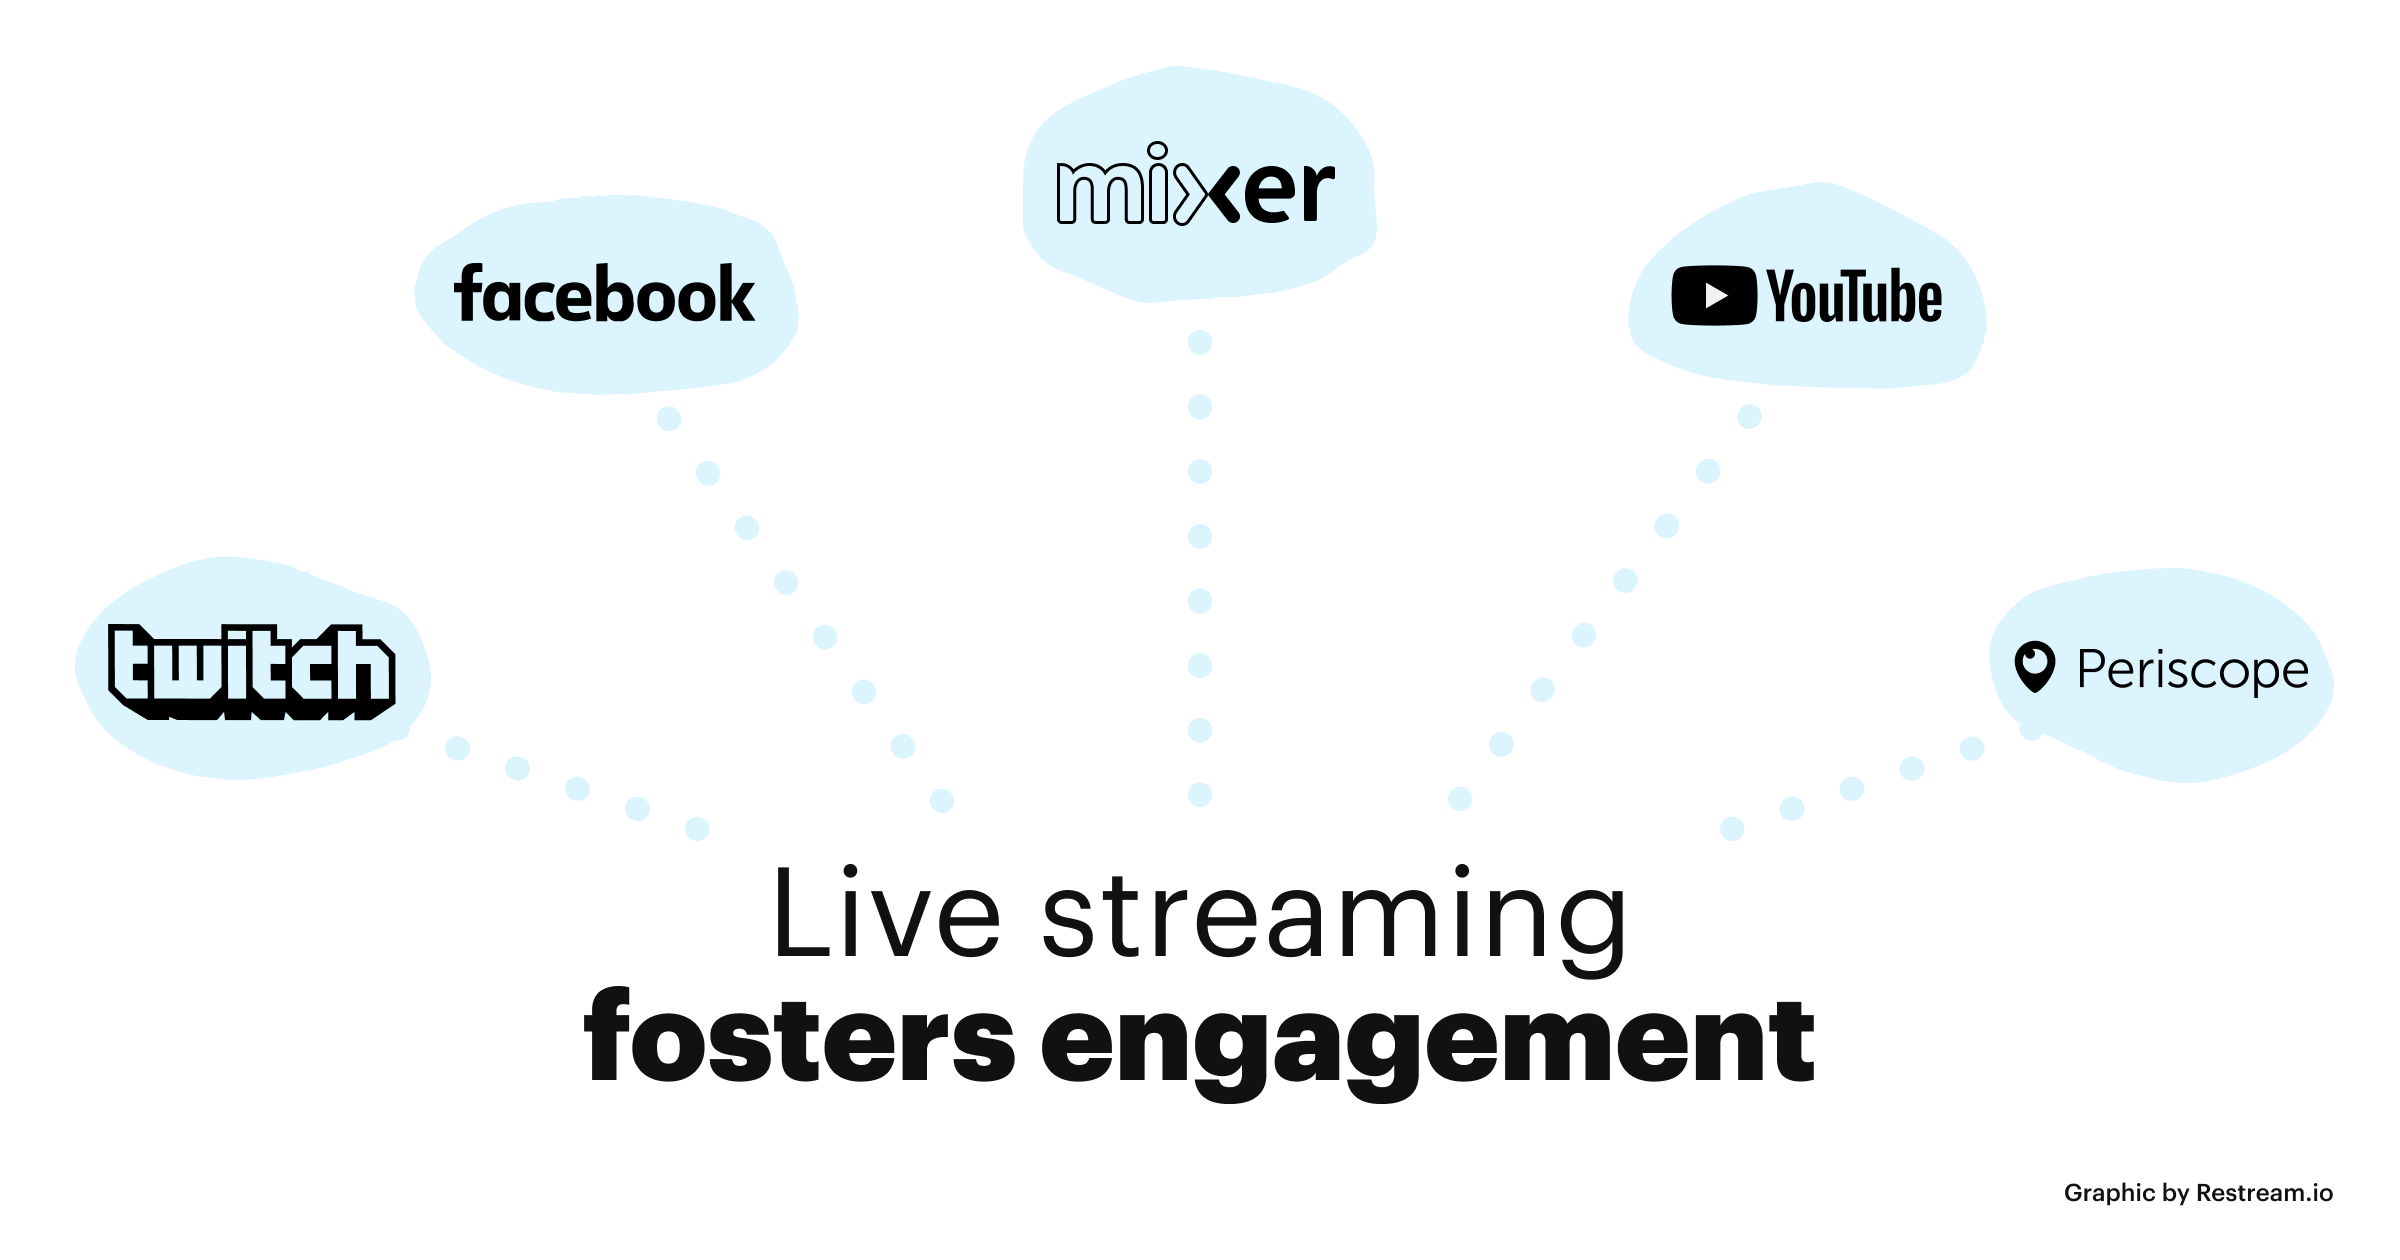 Live streaming fosters engagement